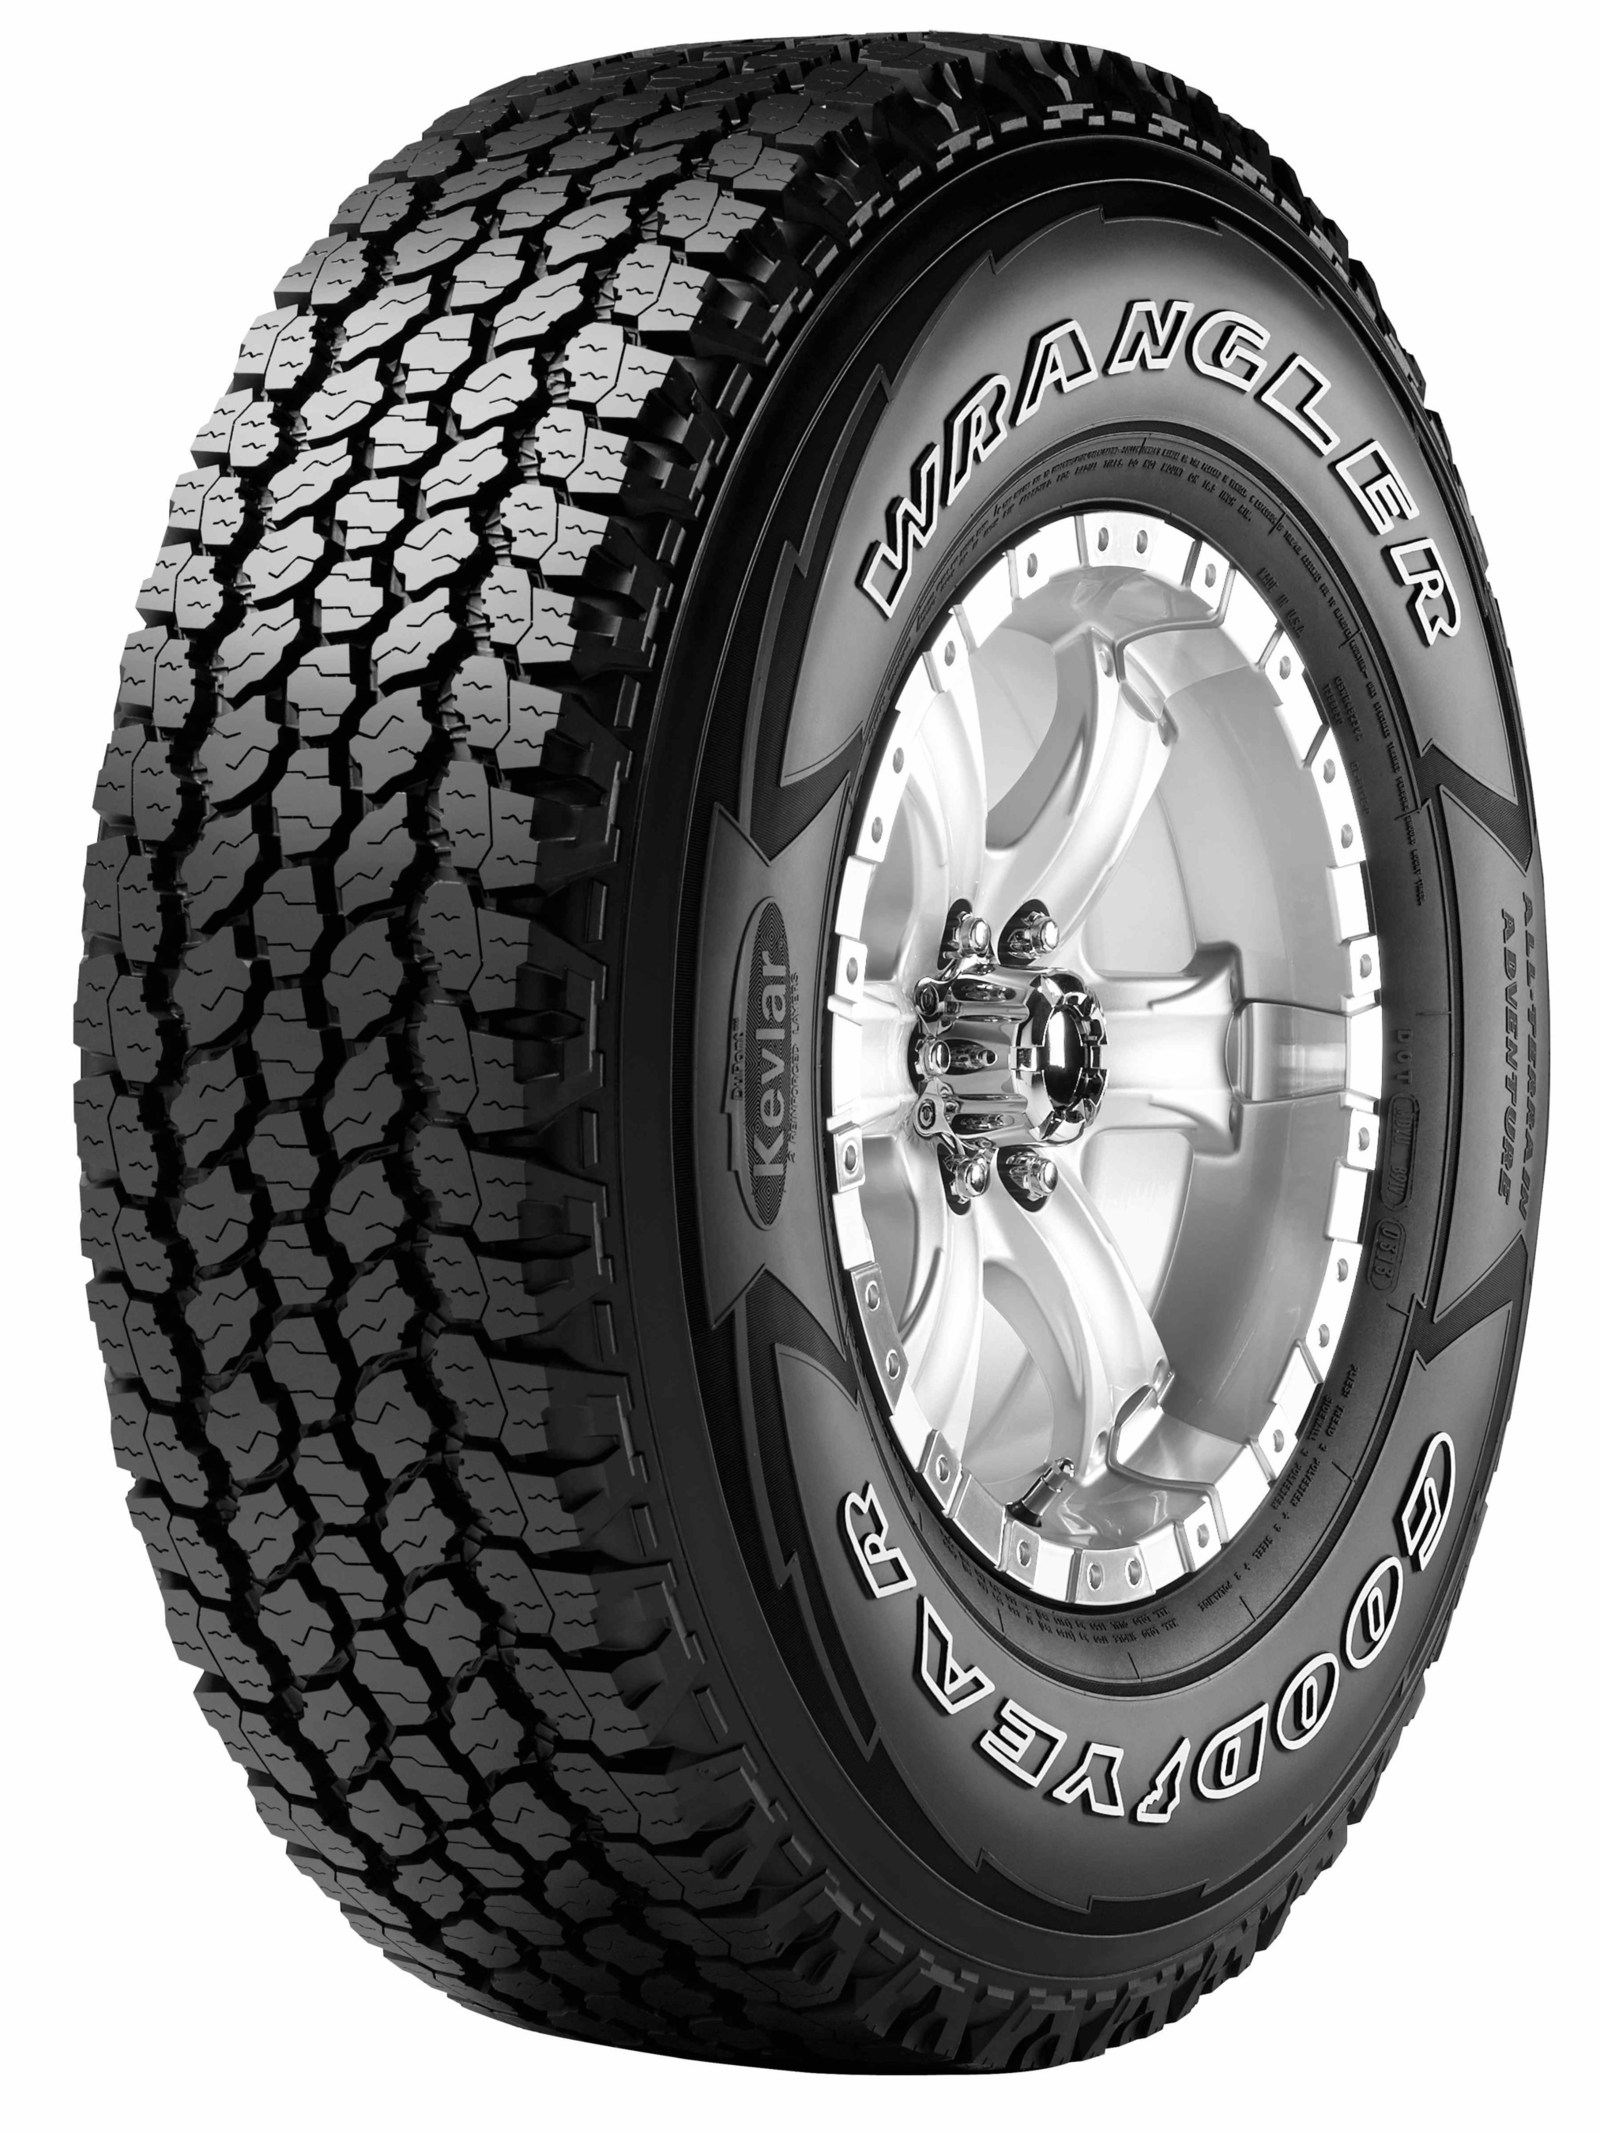 The Goodyear Wrangler All-Terrain Adventure with Kevlar is a tire that can handle on- and off-highway conditions, thanks to its traction ridges, biting edges, Durawall Technology and more. (PRNewsfoto/The Goodyear Tire & Rubber Comp)